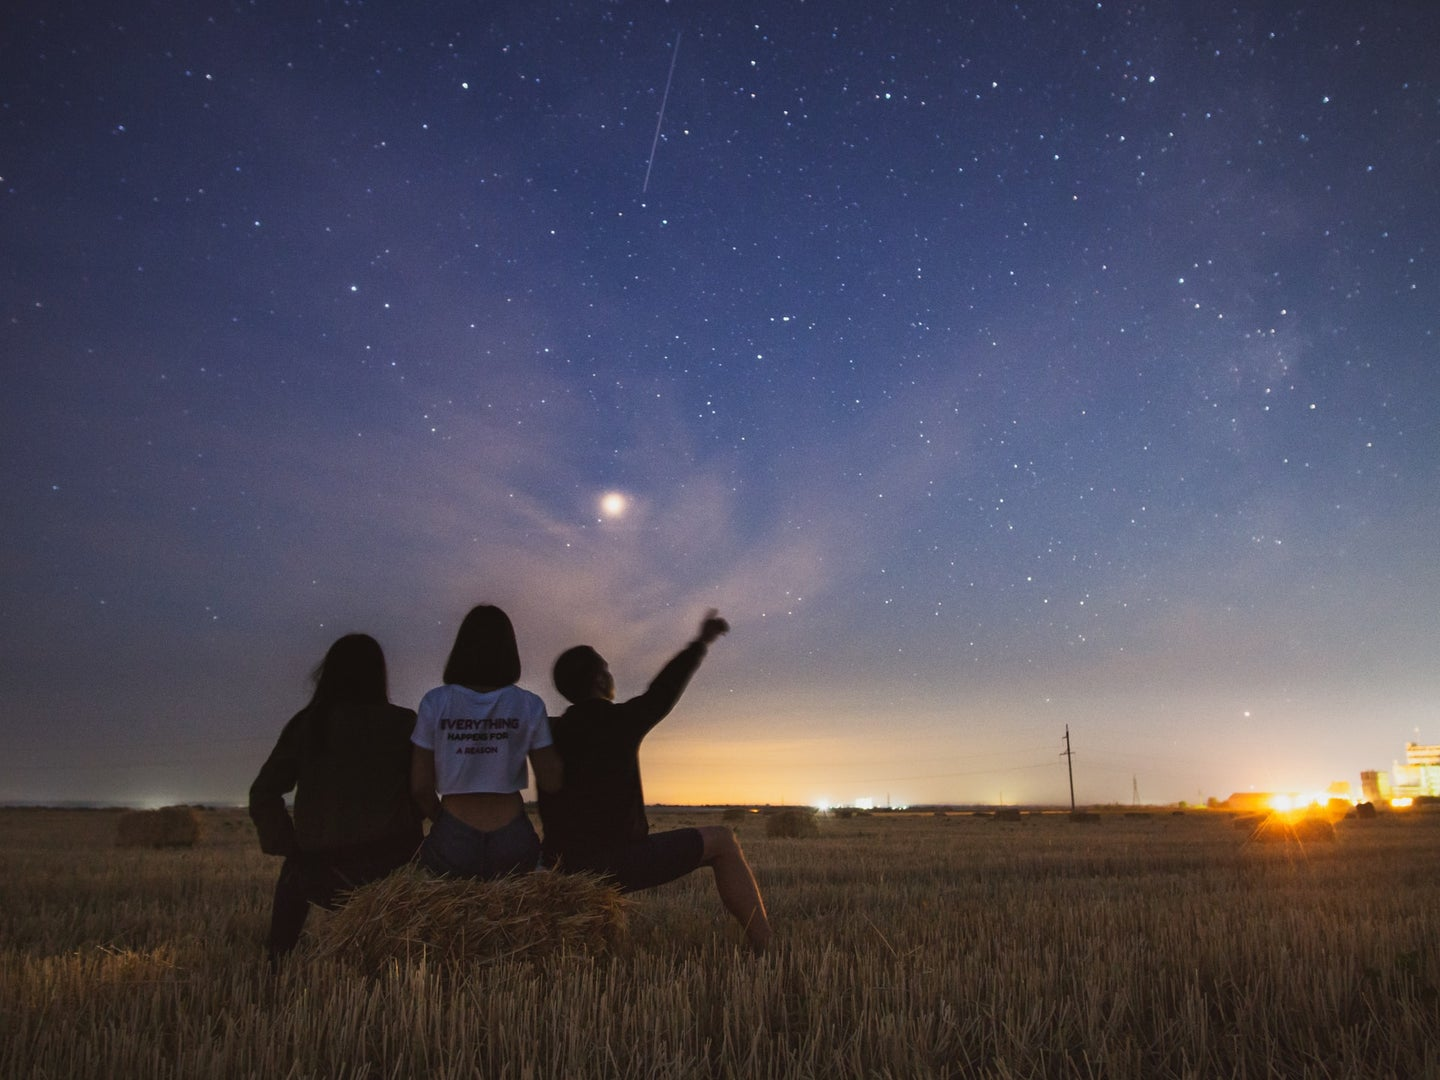 Three people watching the night sky while sitting on a hay bale in a field